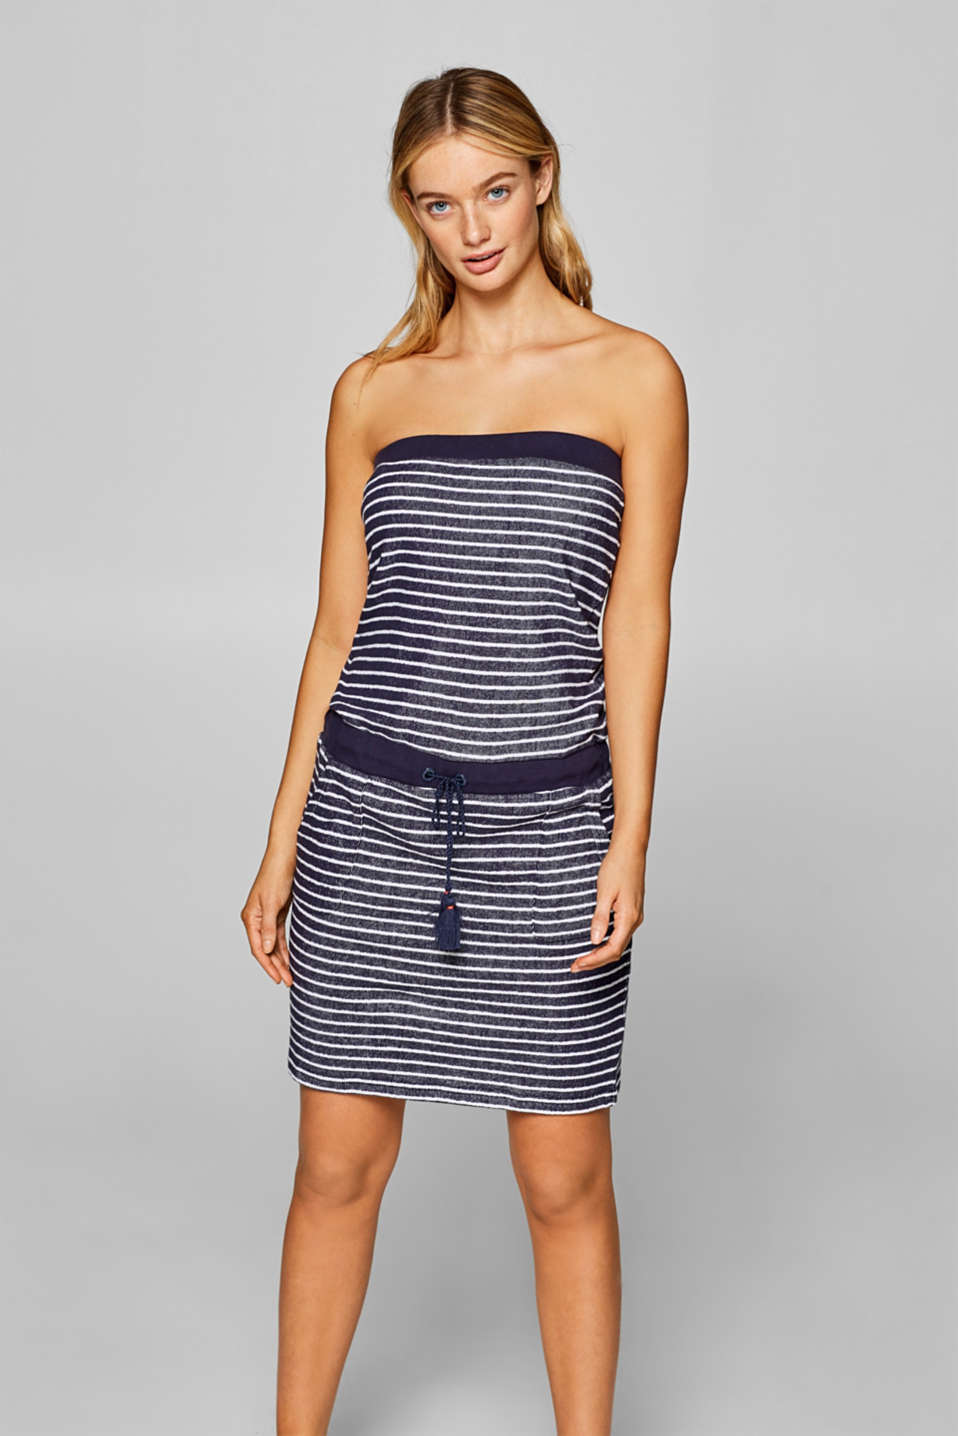 Esprit - Terrycloth dress with stripes, 100% cotton